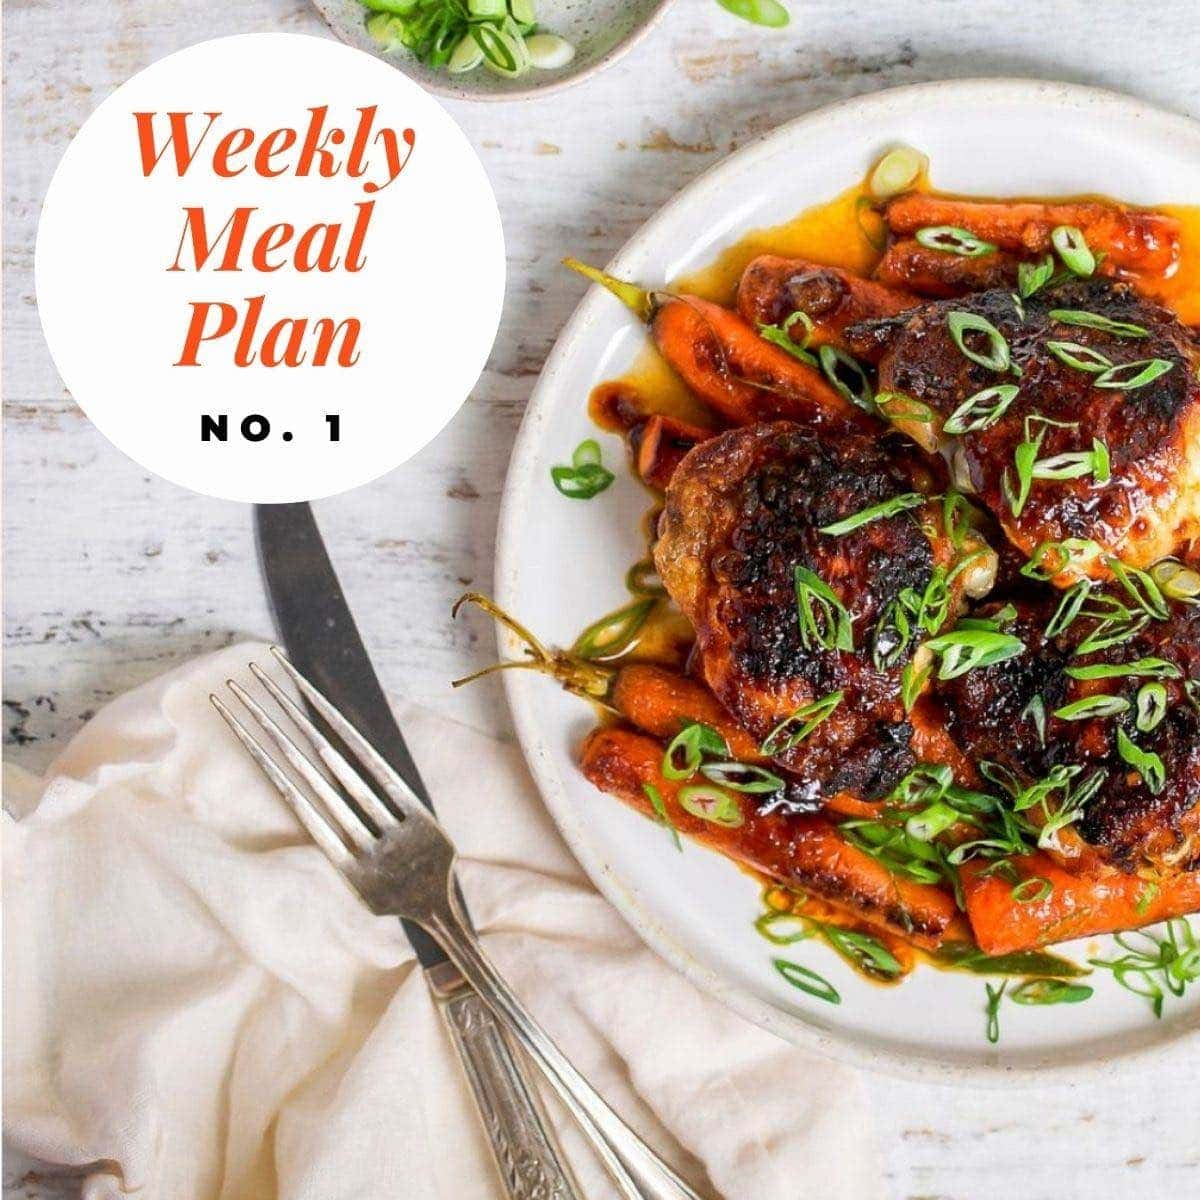 Plate of chicken with carrots on a white plate. Text overlay: Weekly Meal Plan No, 1